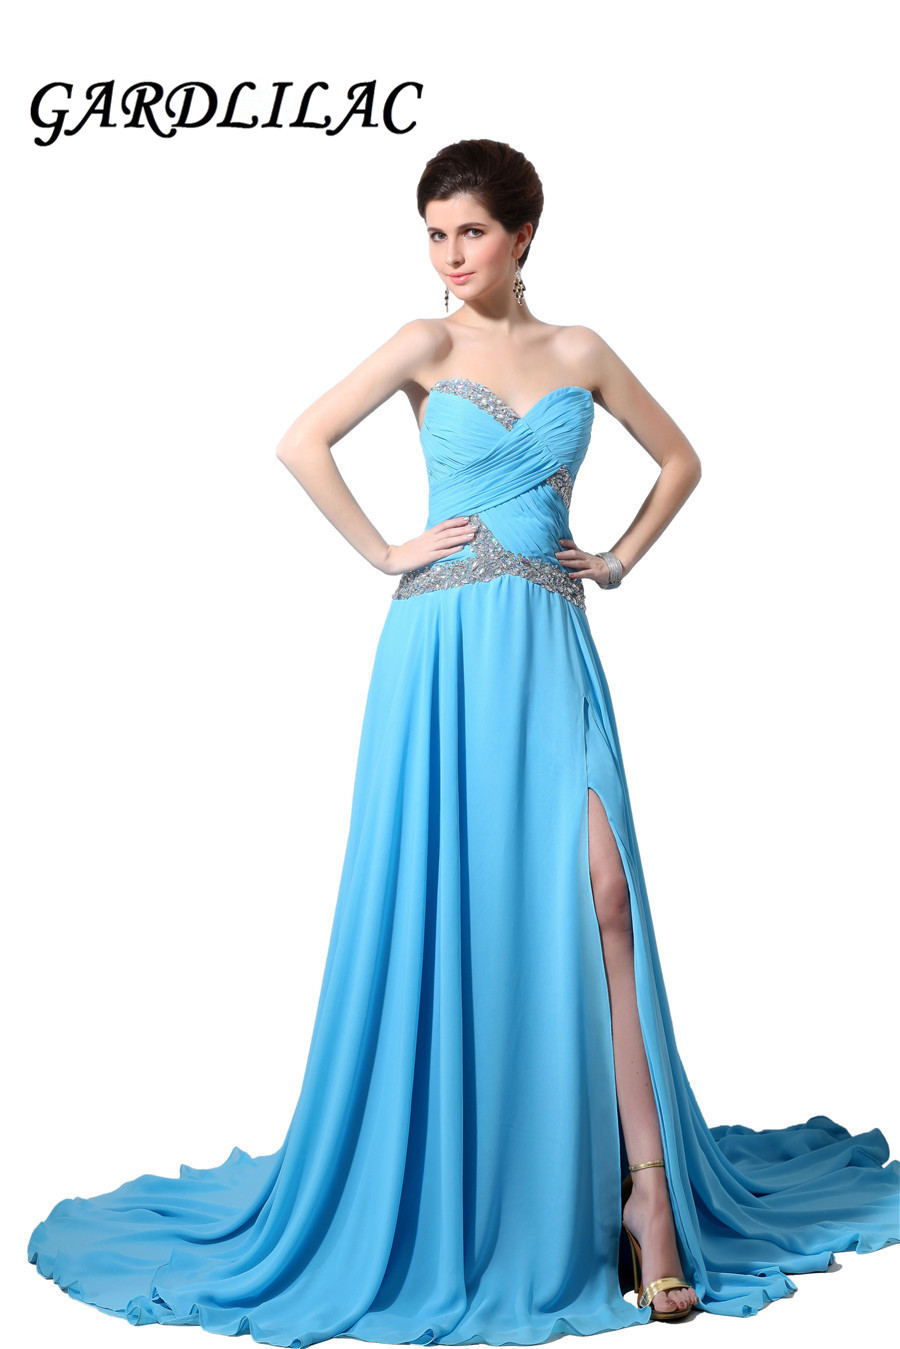 Gardlilac Chiffon Off Shoulder Long Evening Dress med Beading Blue Side Split Formell Kväll Party Dress